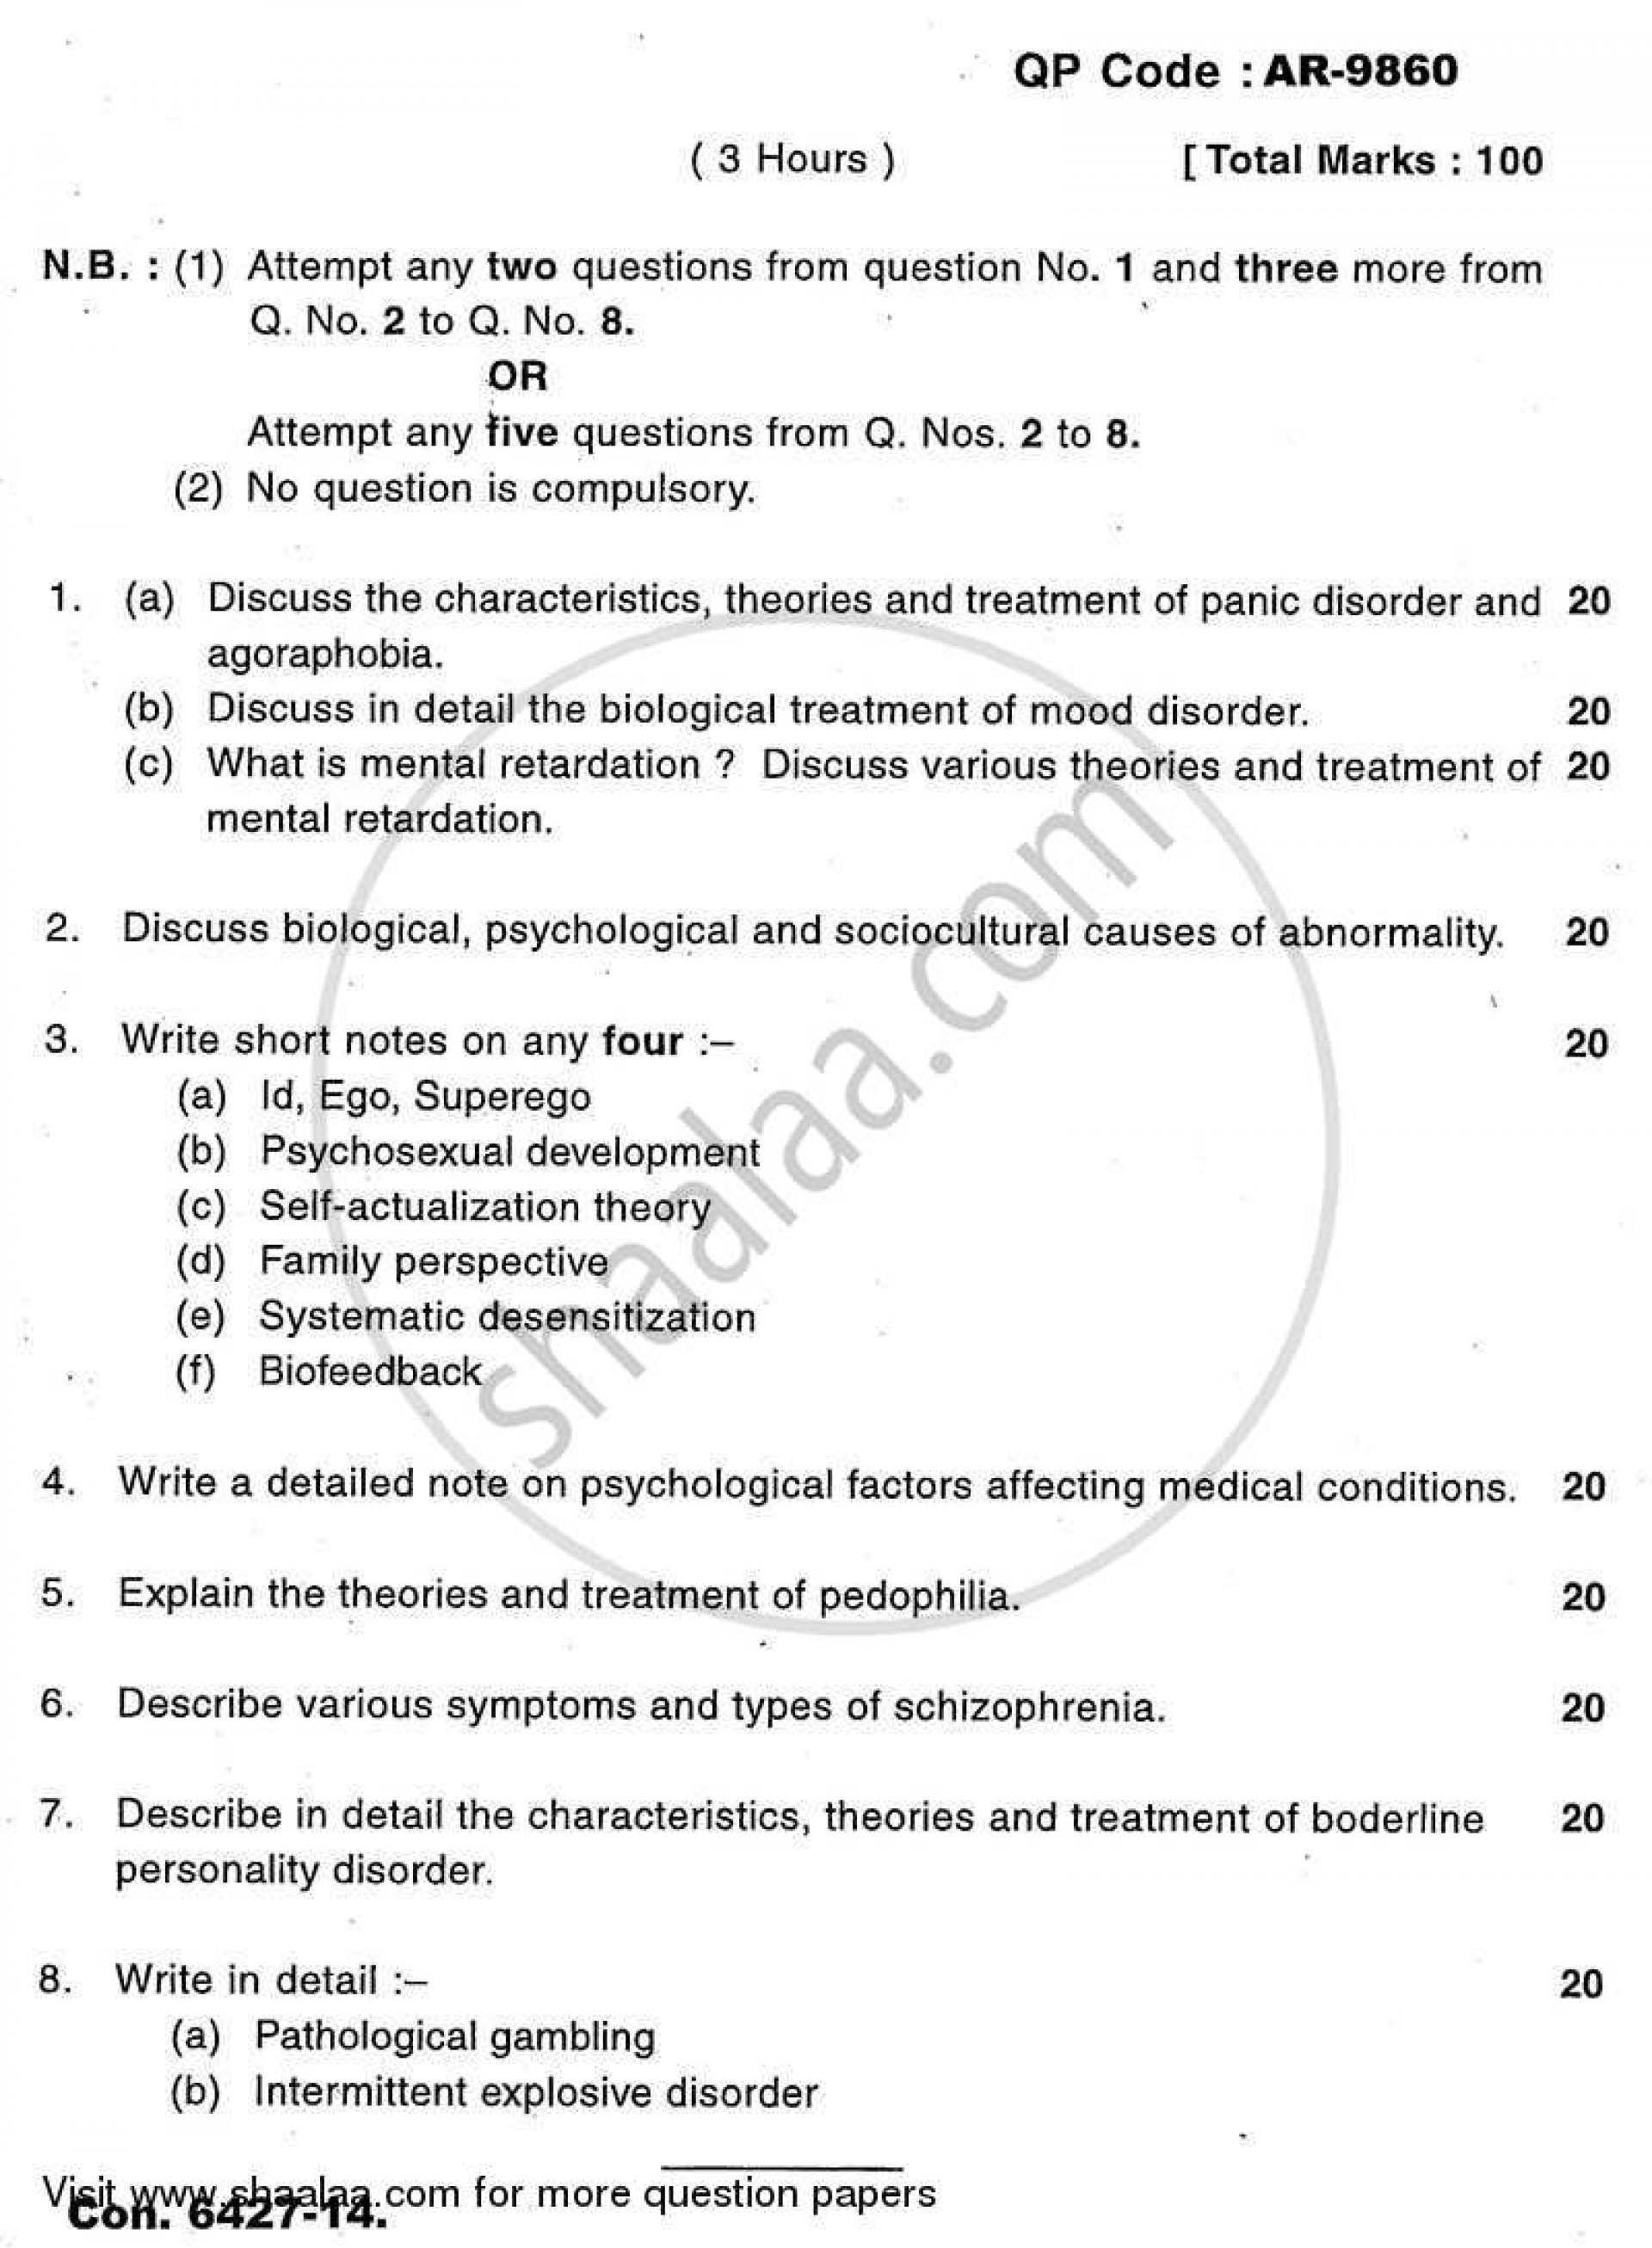 006 University Of Mumbai Bachelor Abnormal Psychology Ty Yearly Pattern 3rd Year Tyba 2013 22439940333094318a79686c42f8b6c1c Essay Example Unforgettable Topics On Dreams Forensic Term Paper Extended 1920